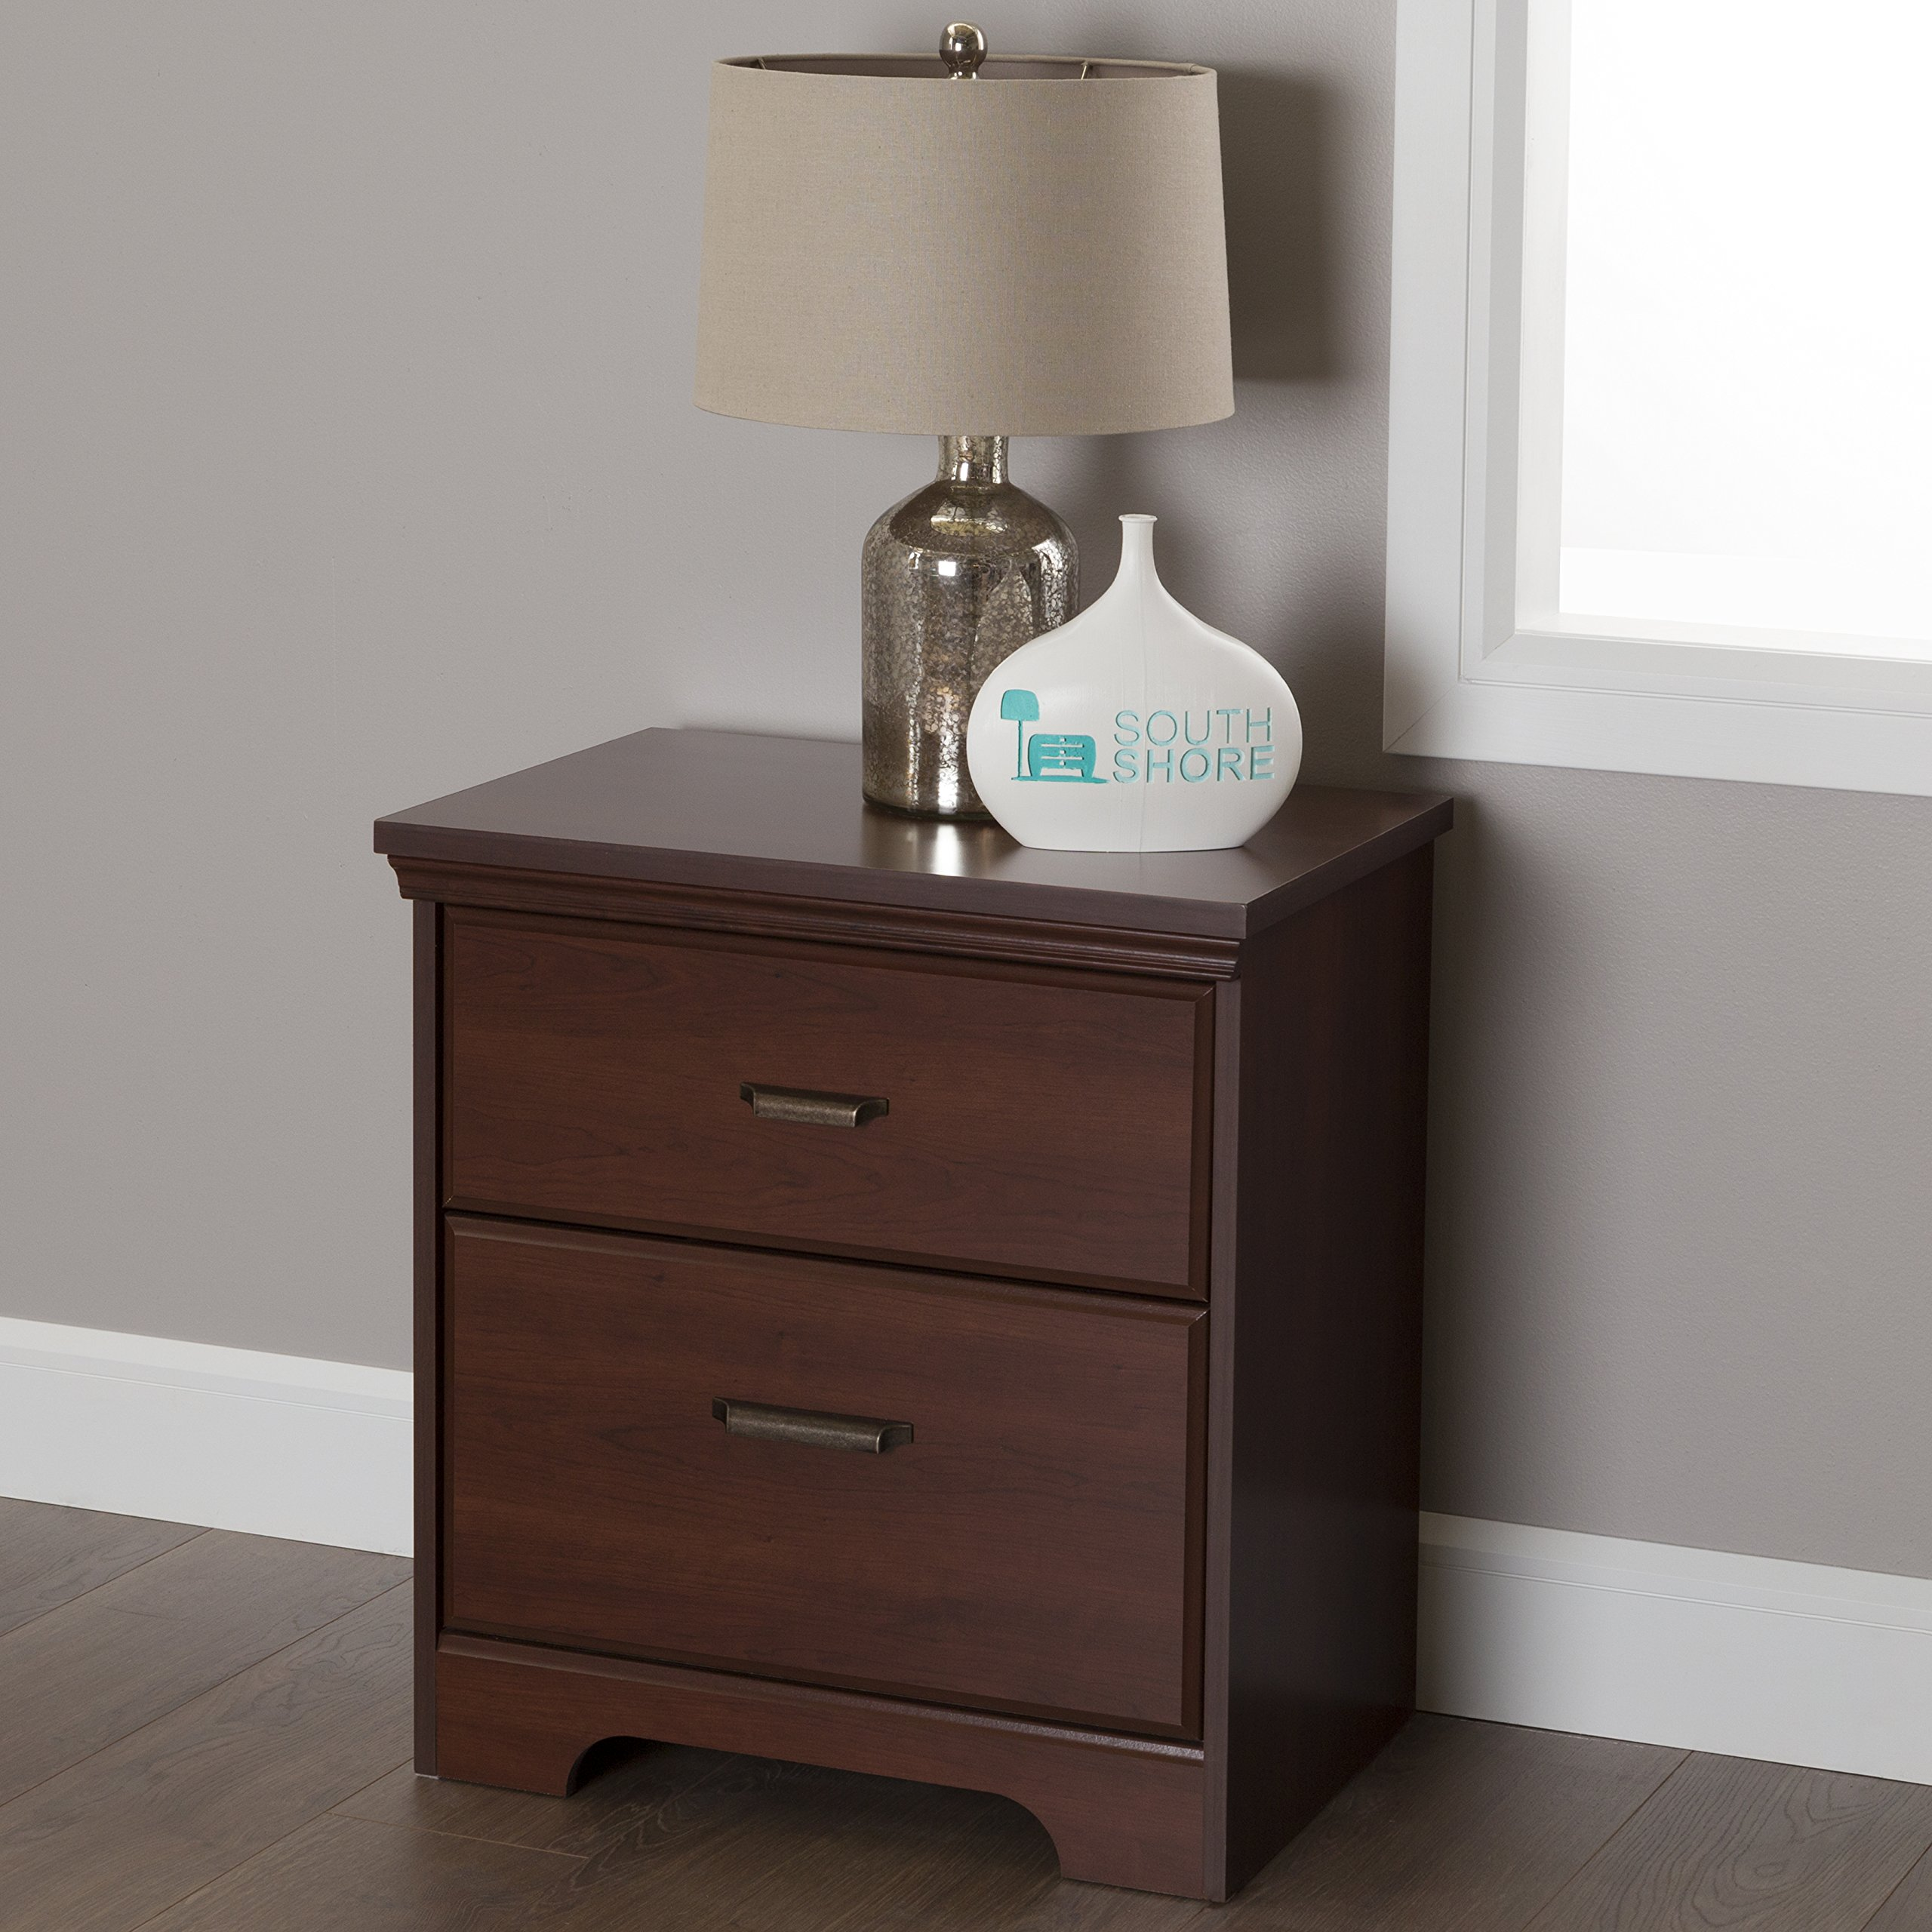 South Shore Versa 2-Drawer Nightstand, Royal Cherry with Antique Handles